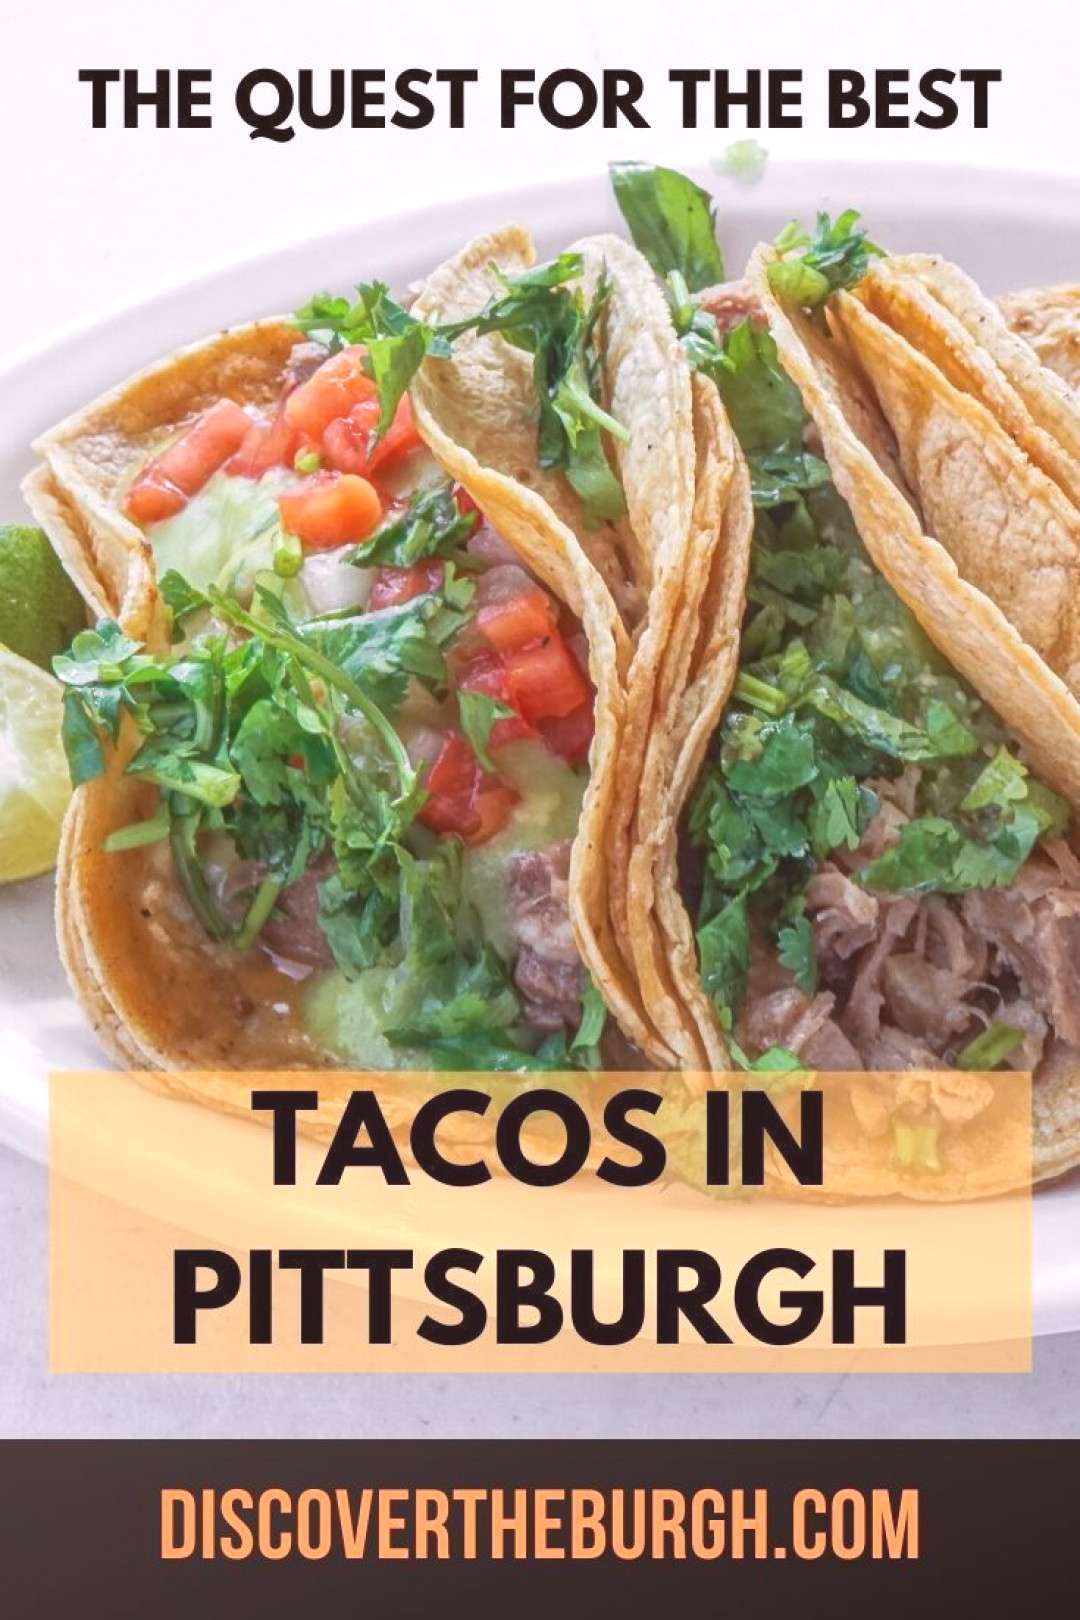 The Quest for the Best Tacos in Pittsburgh Looking to find a new favorite place for tacos in Pittsb